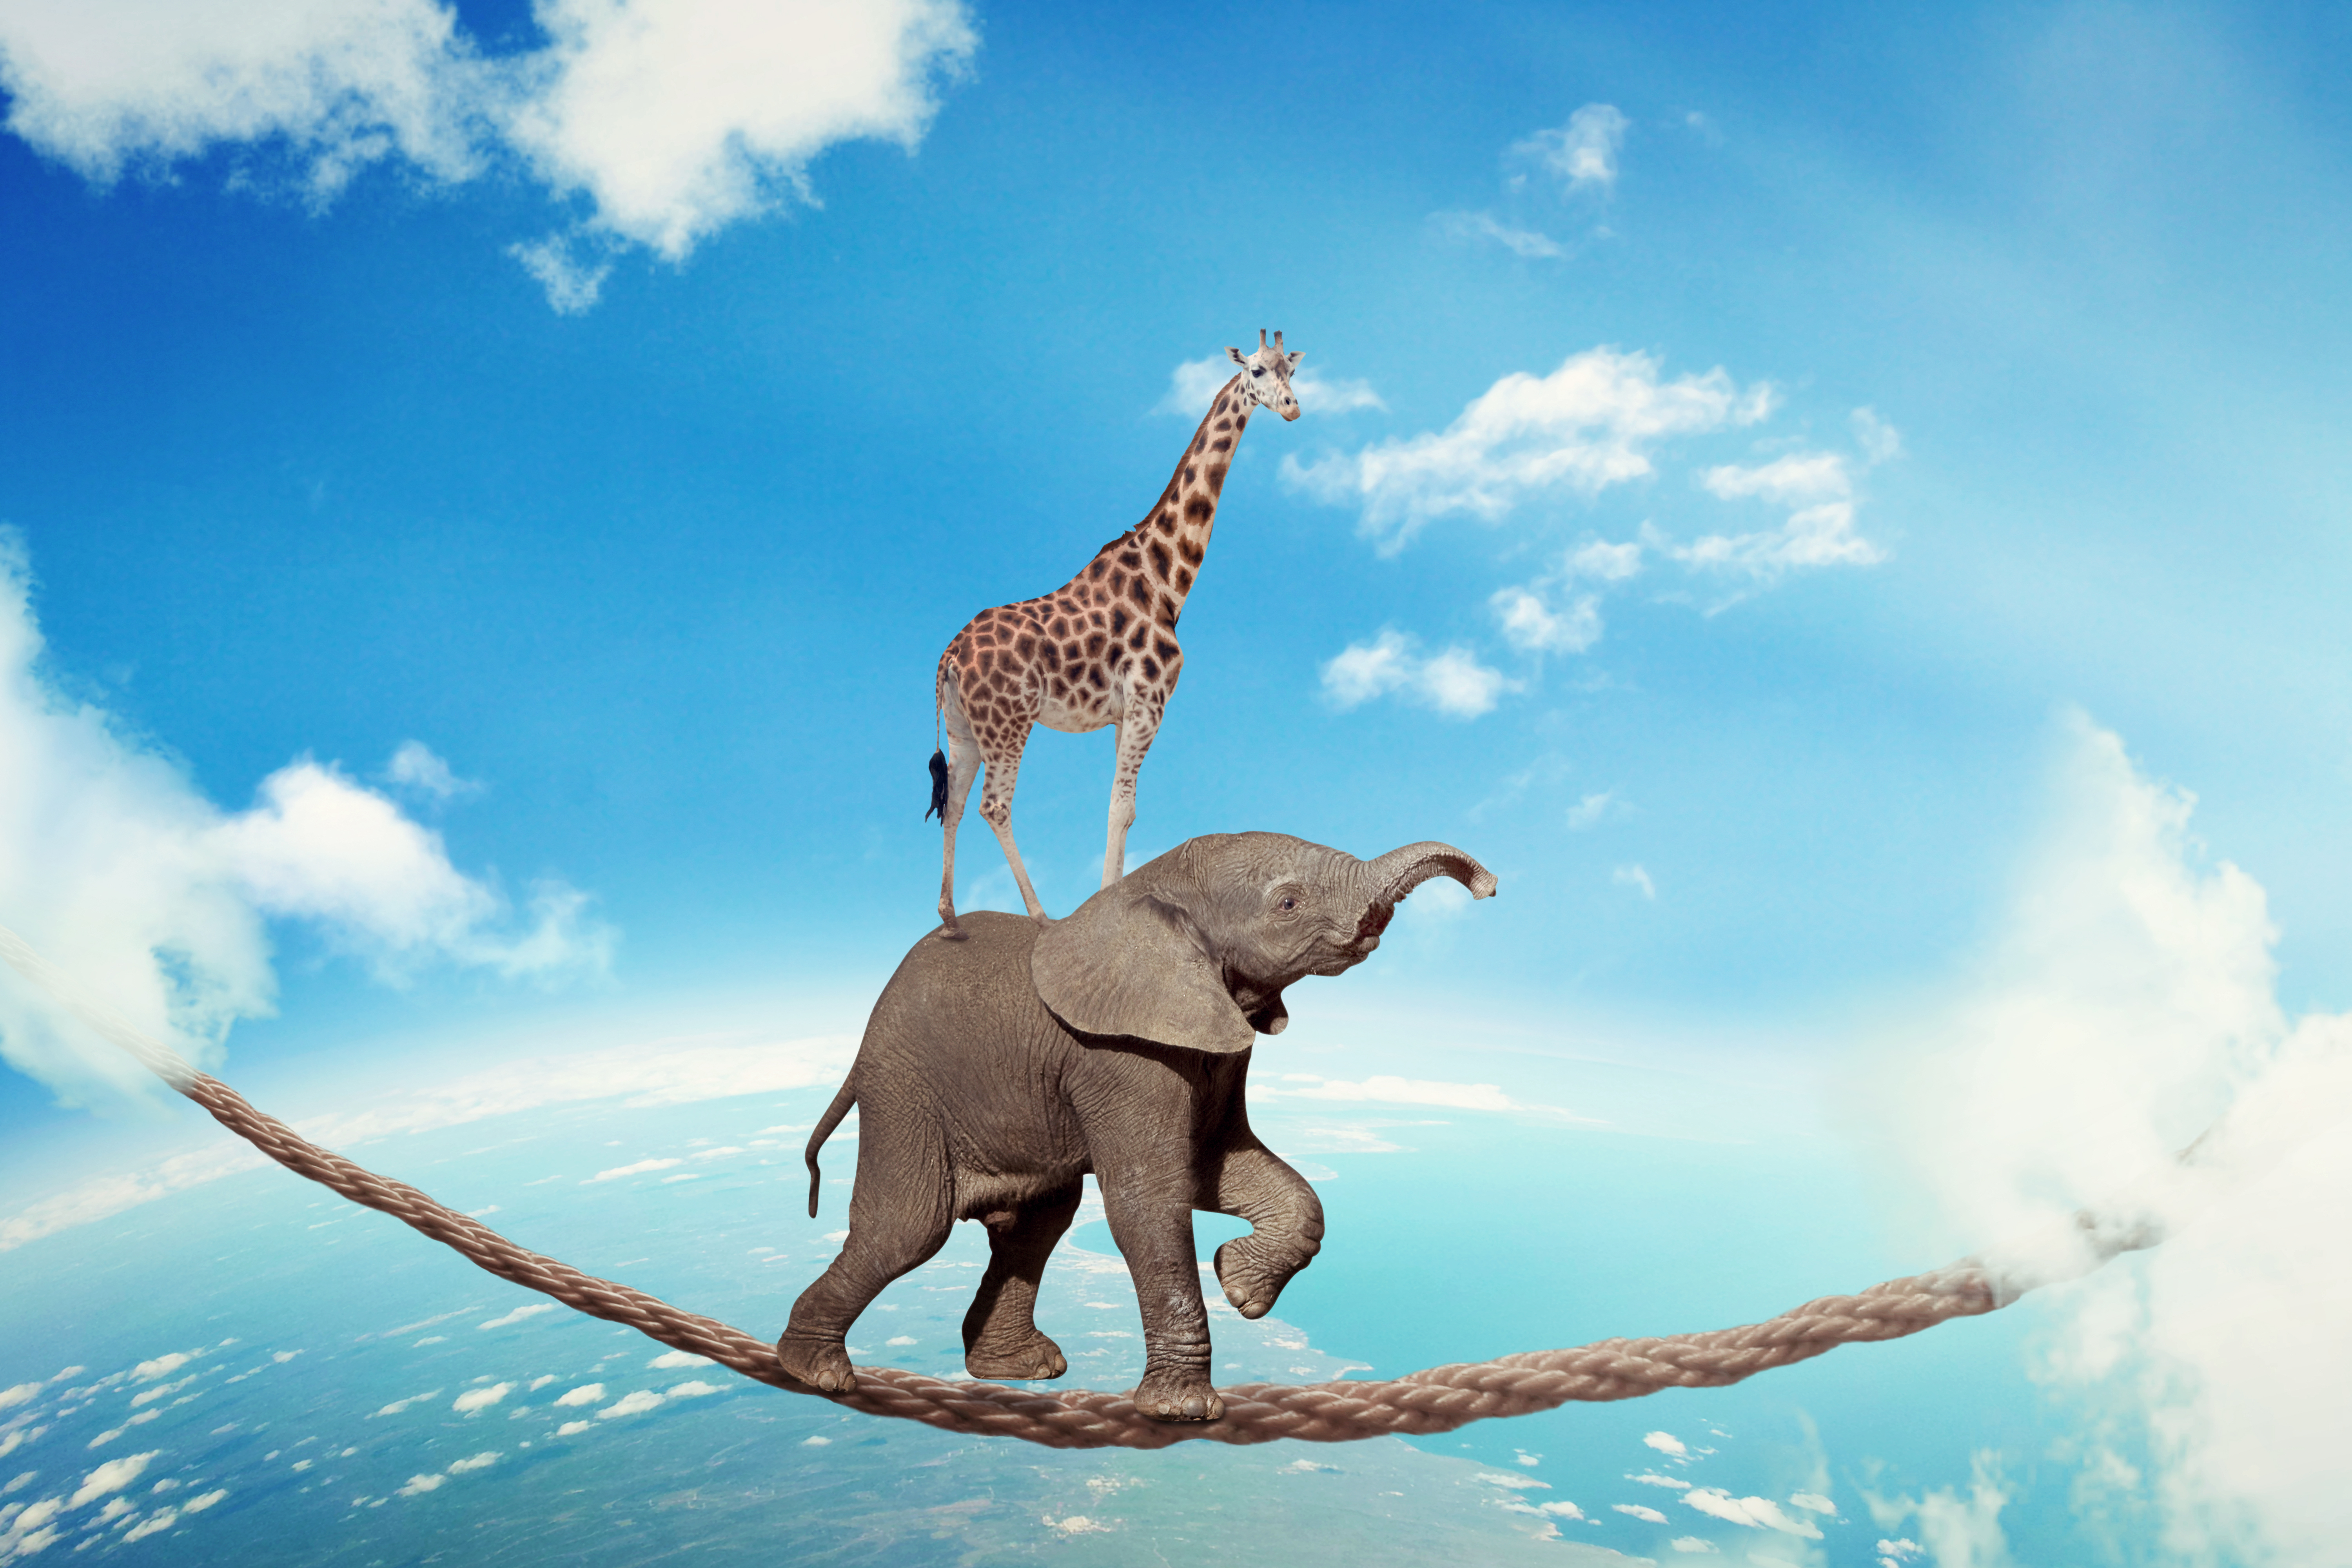 Managing risk business challenges uncertainty concept. Elephant with g